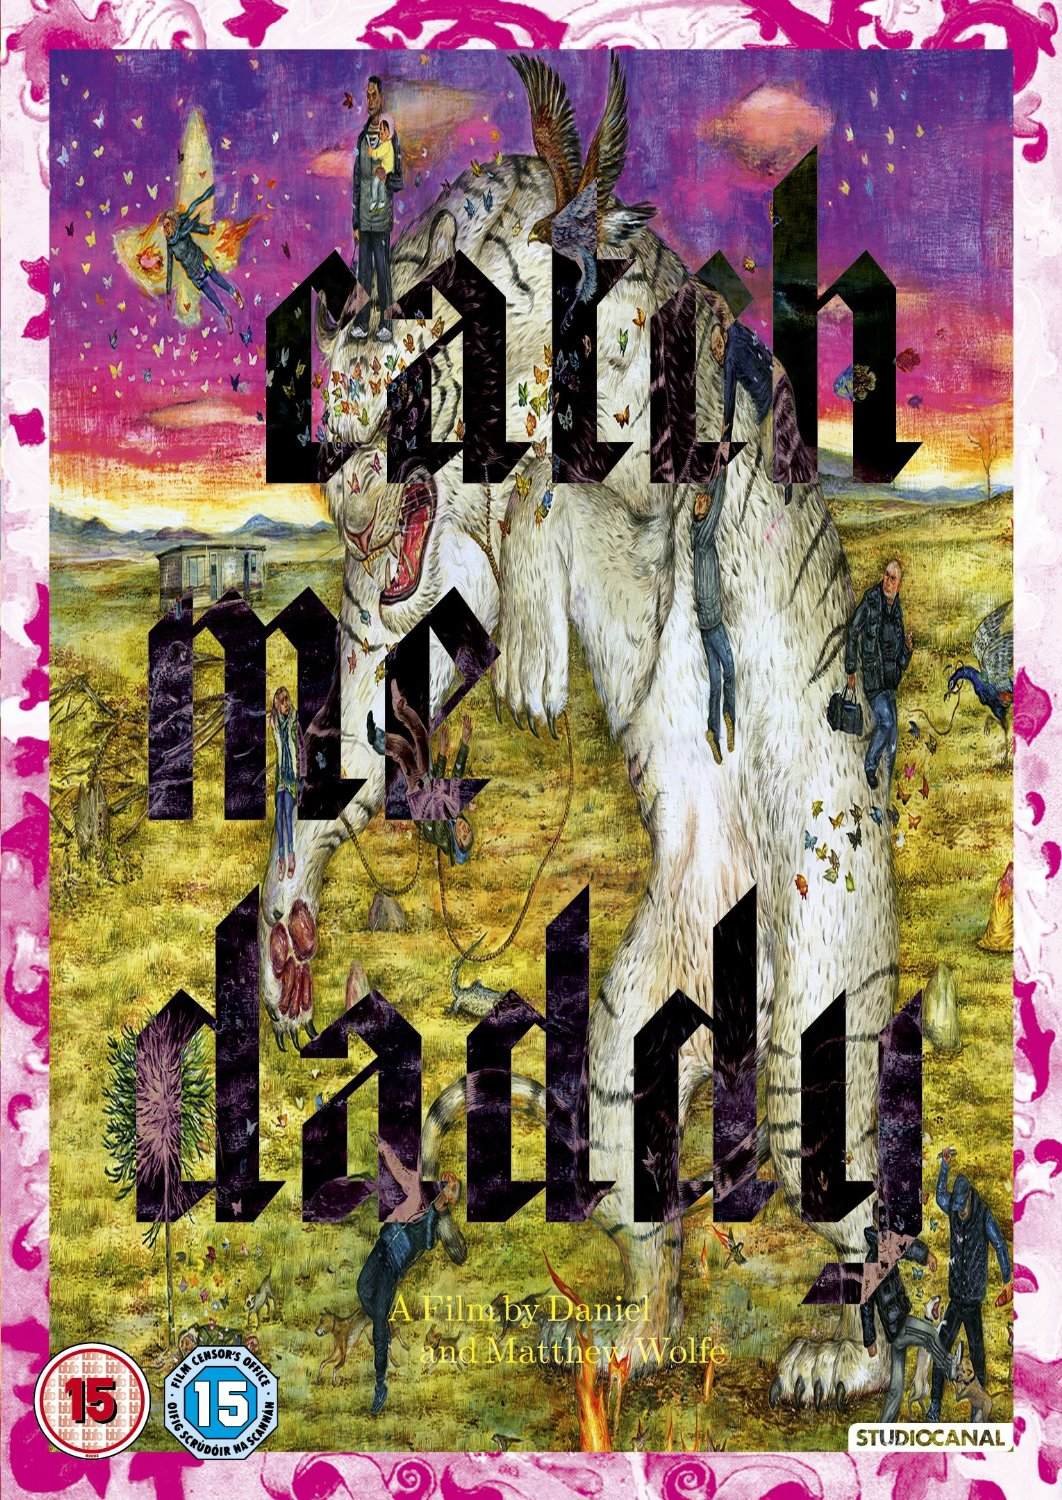 Buy Catch Me Daddy (Limited Edition Fluro Sleeve)